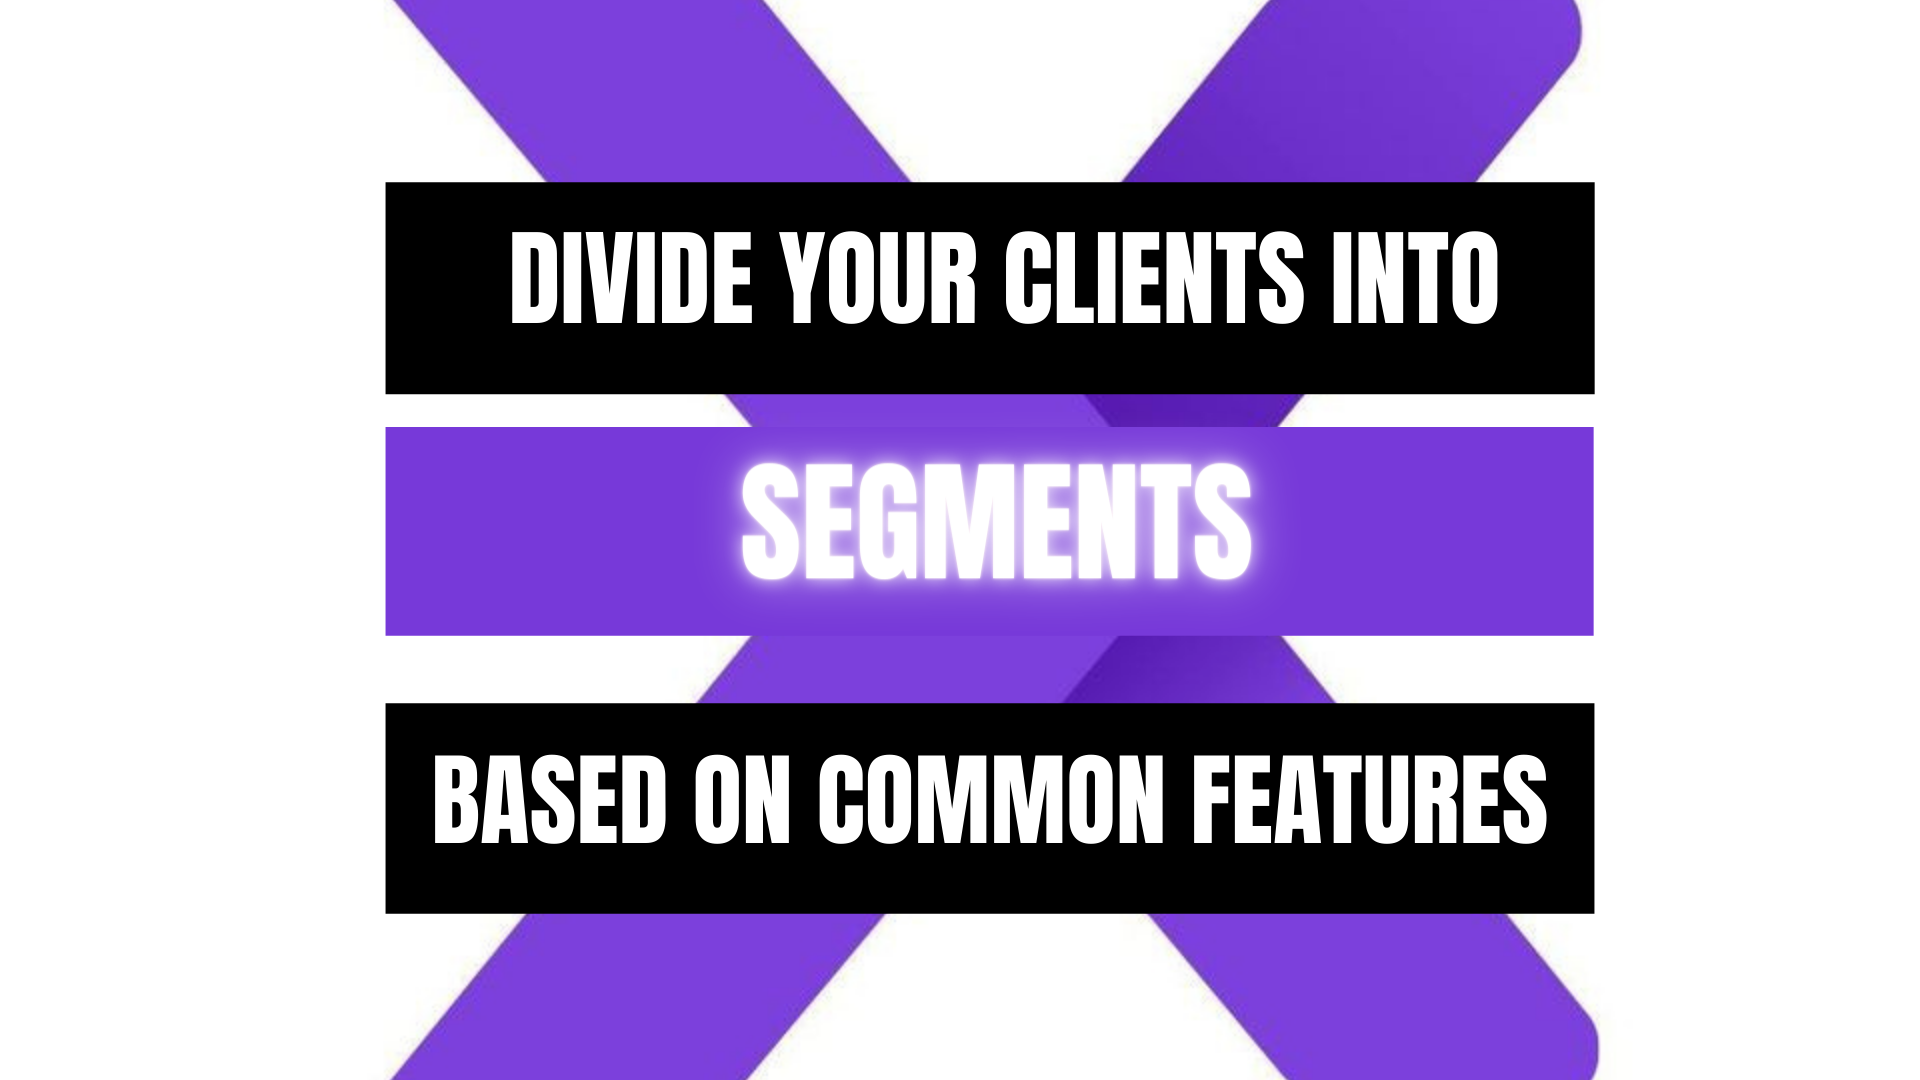 Peekaboox - How to Divide Your Clients into Segments